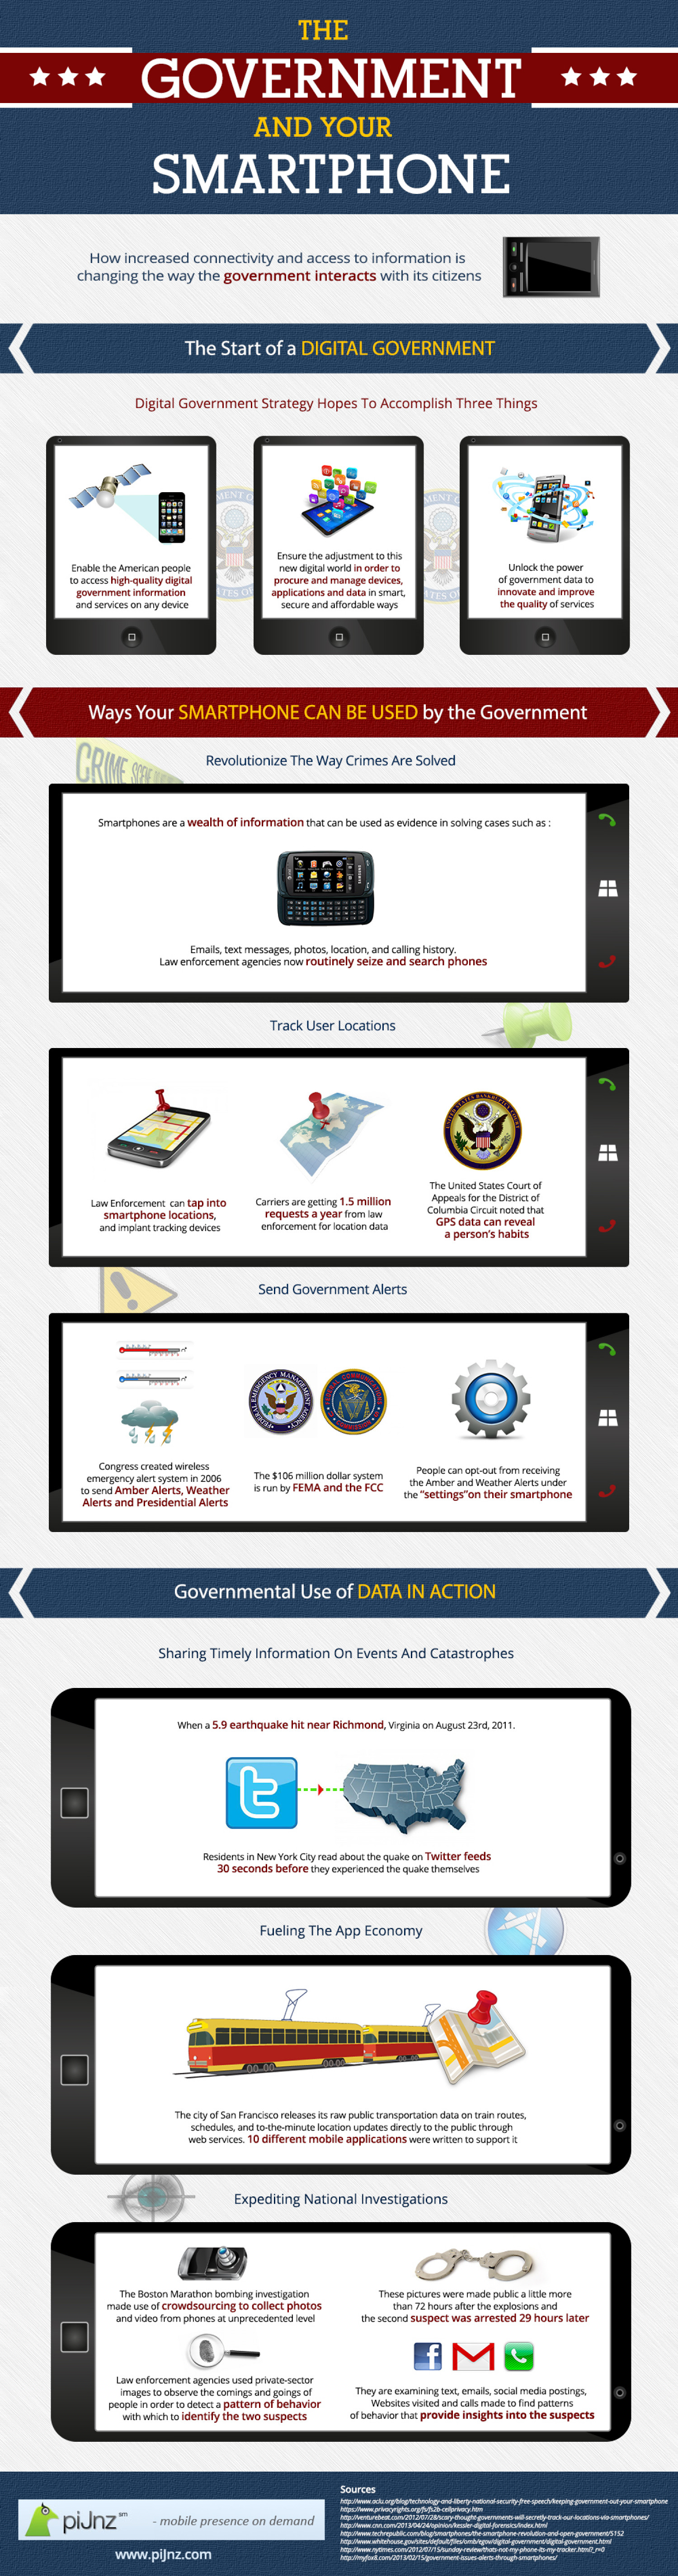 The Government and Your Smartphone  Infographic